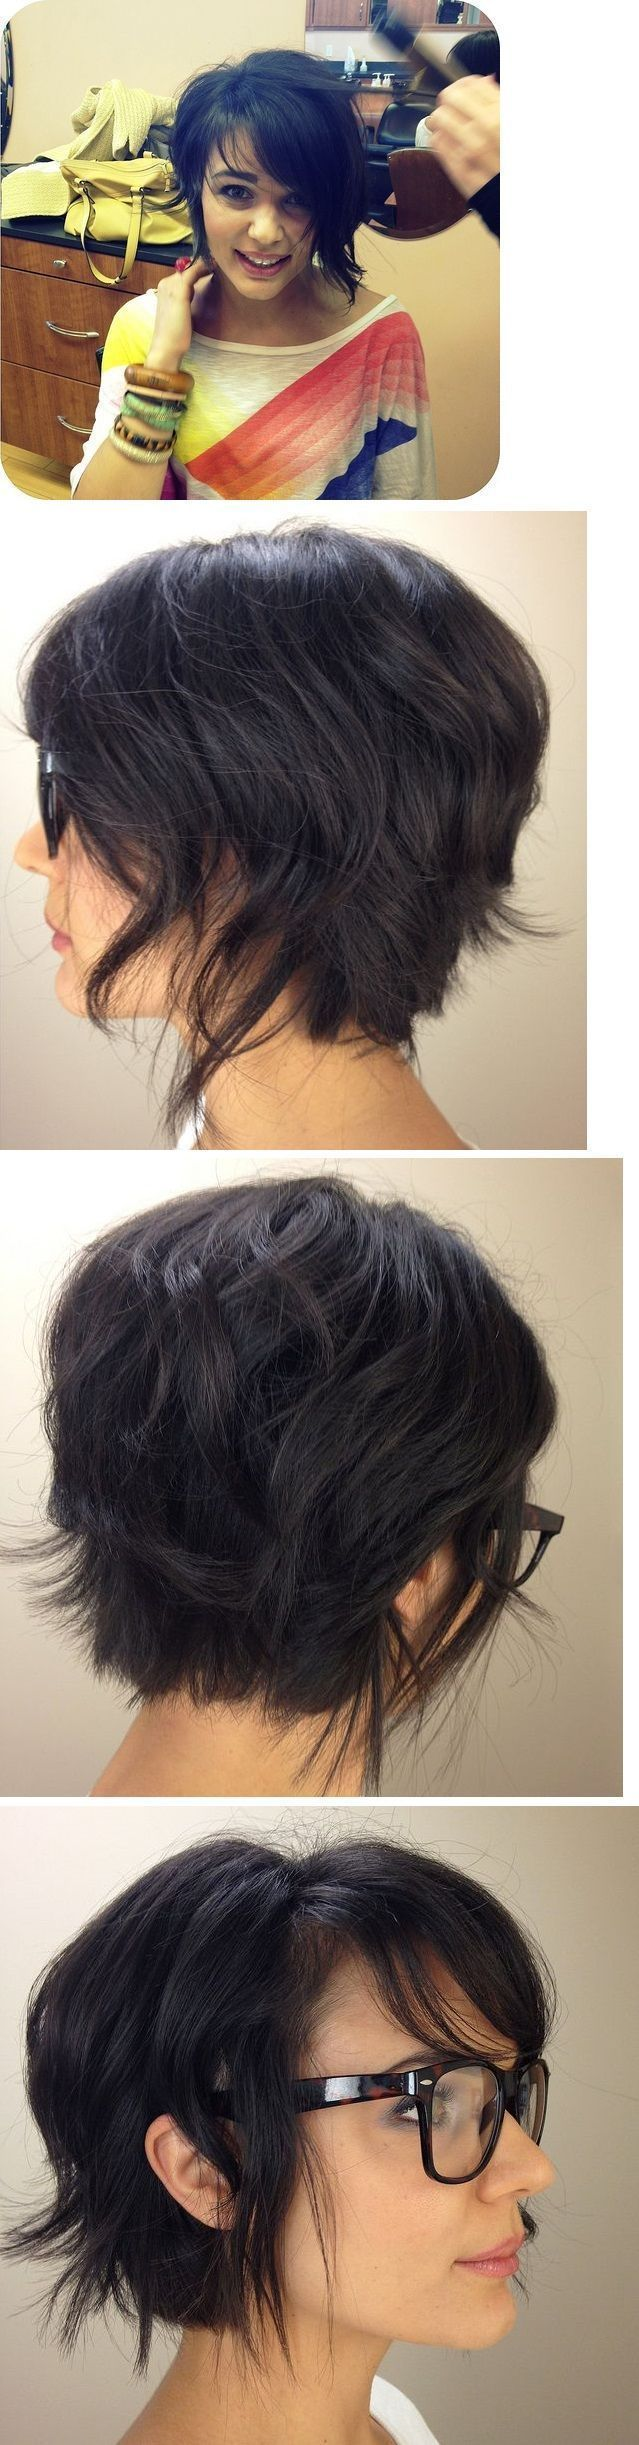 how to style a growing pixie cut